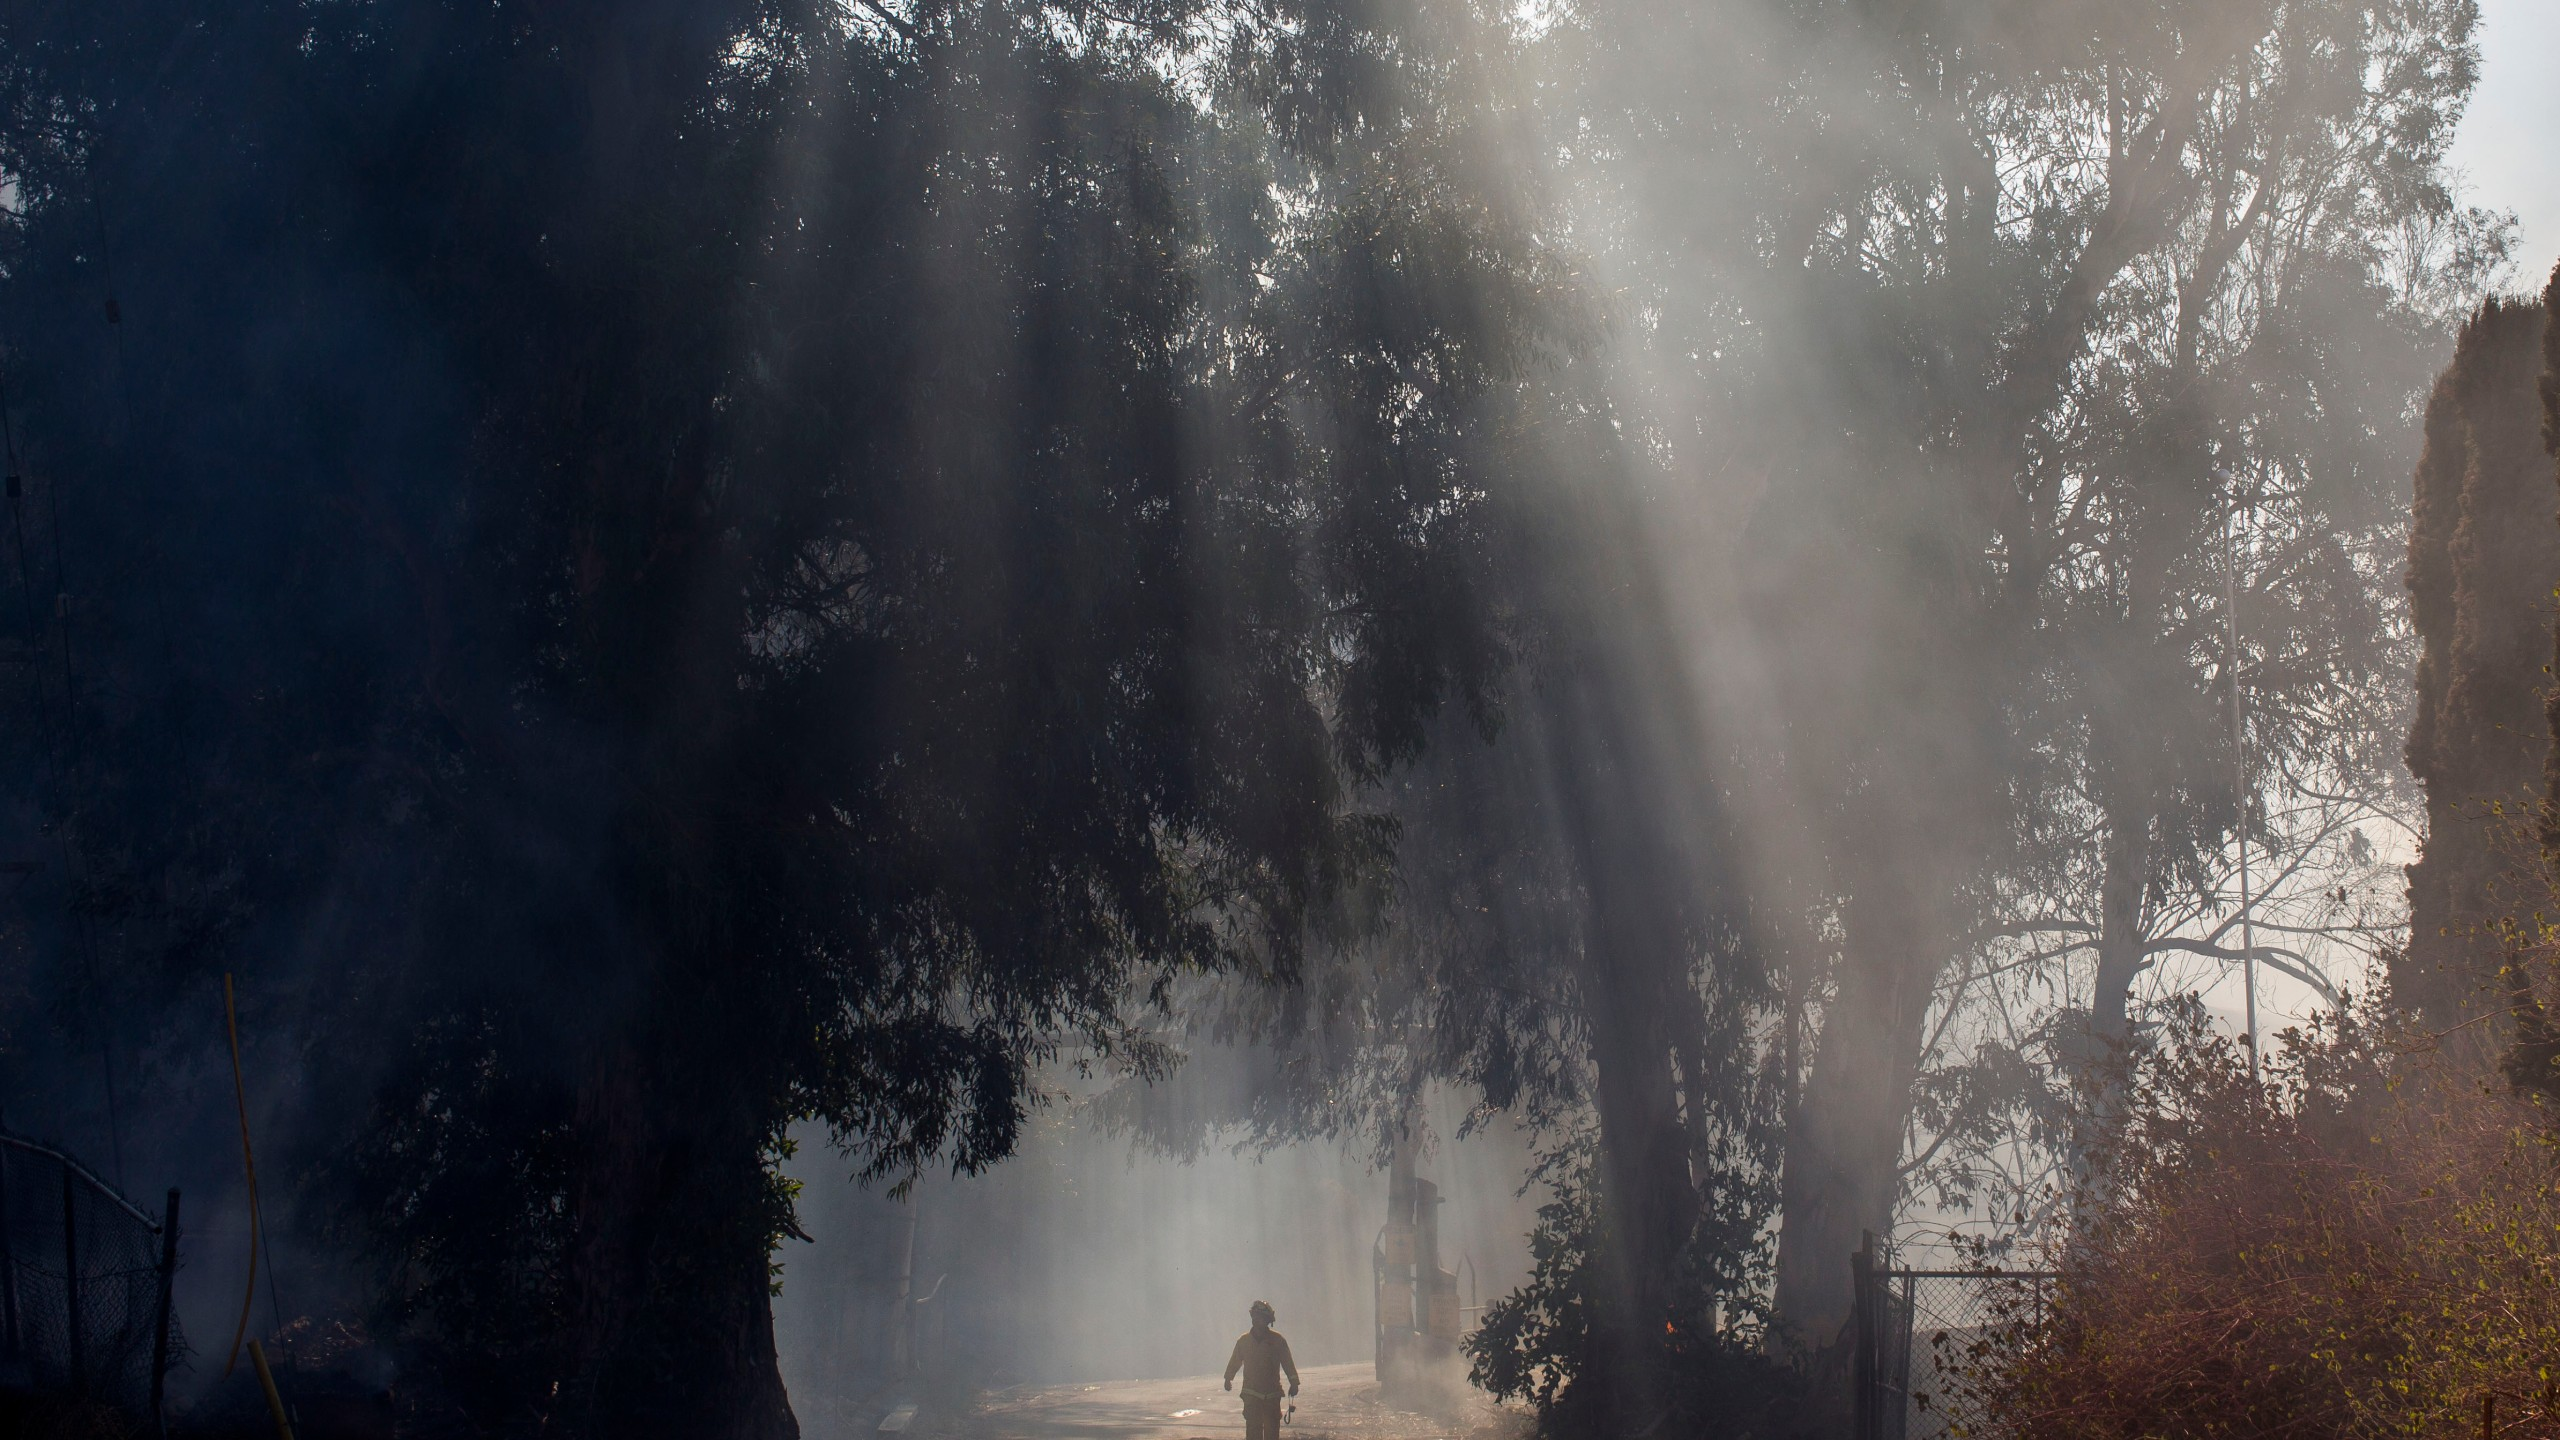 A firefighter walks into the smoke of the Maria Fire at South Mountain Road, in Santa Paula, Ventura County, in California, on Nov. 1, 2019. (Credit: APU GOMES via Getty Images)